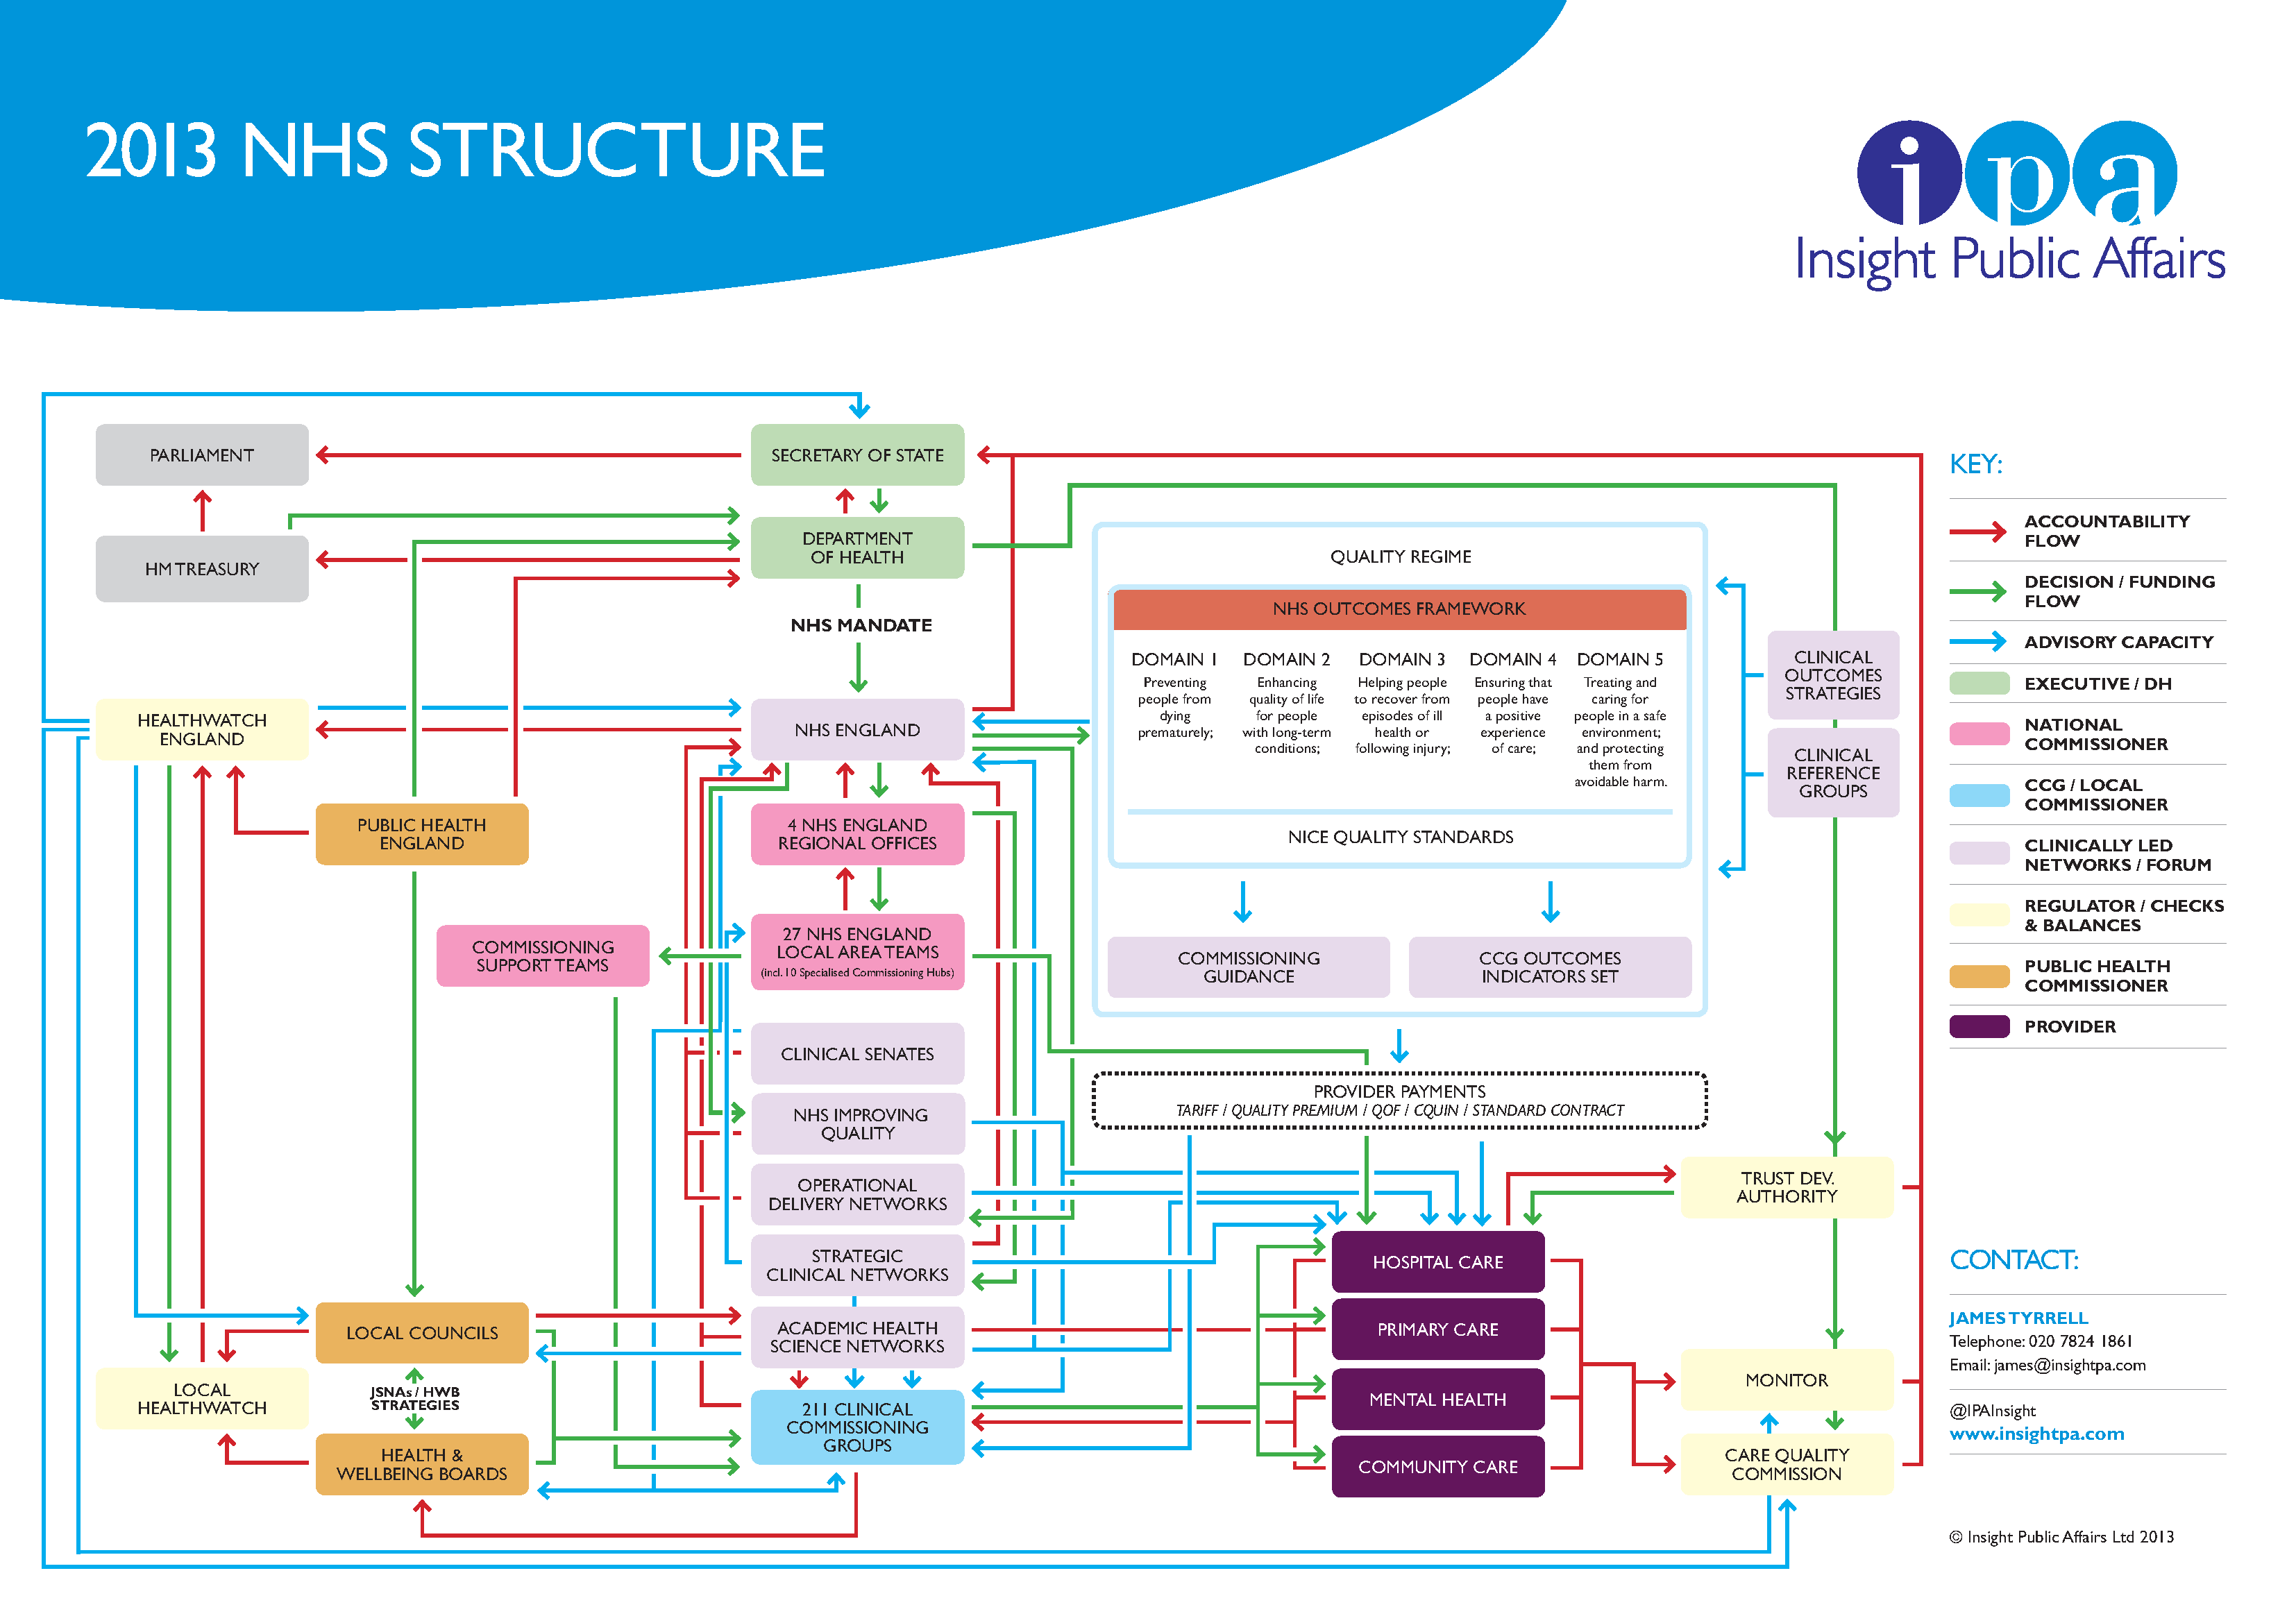 For a more indepth look at the structure, try Insight